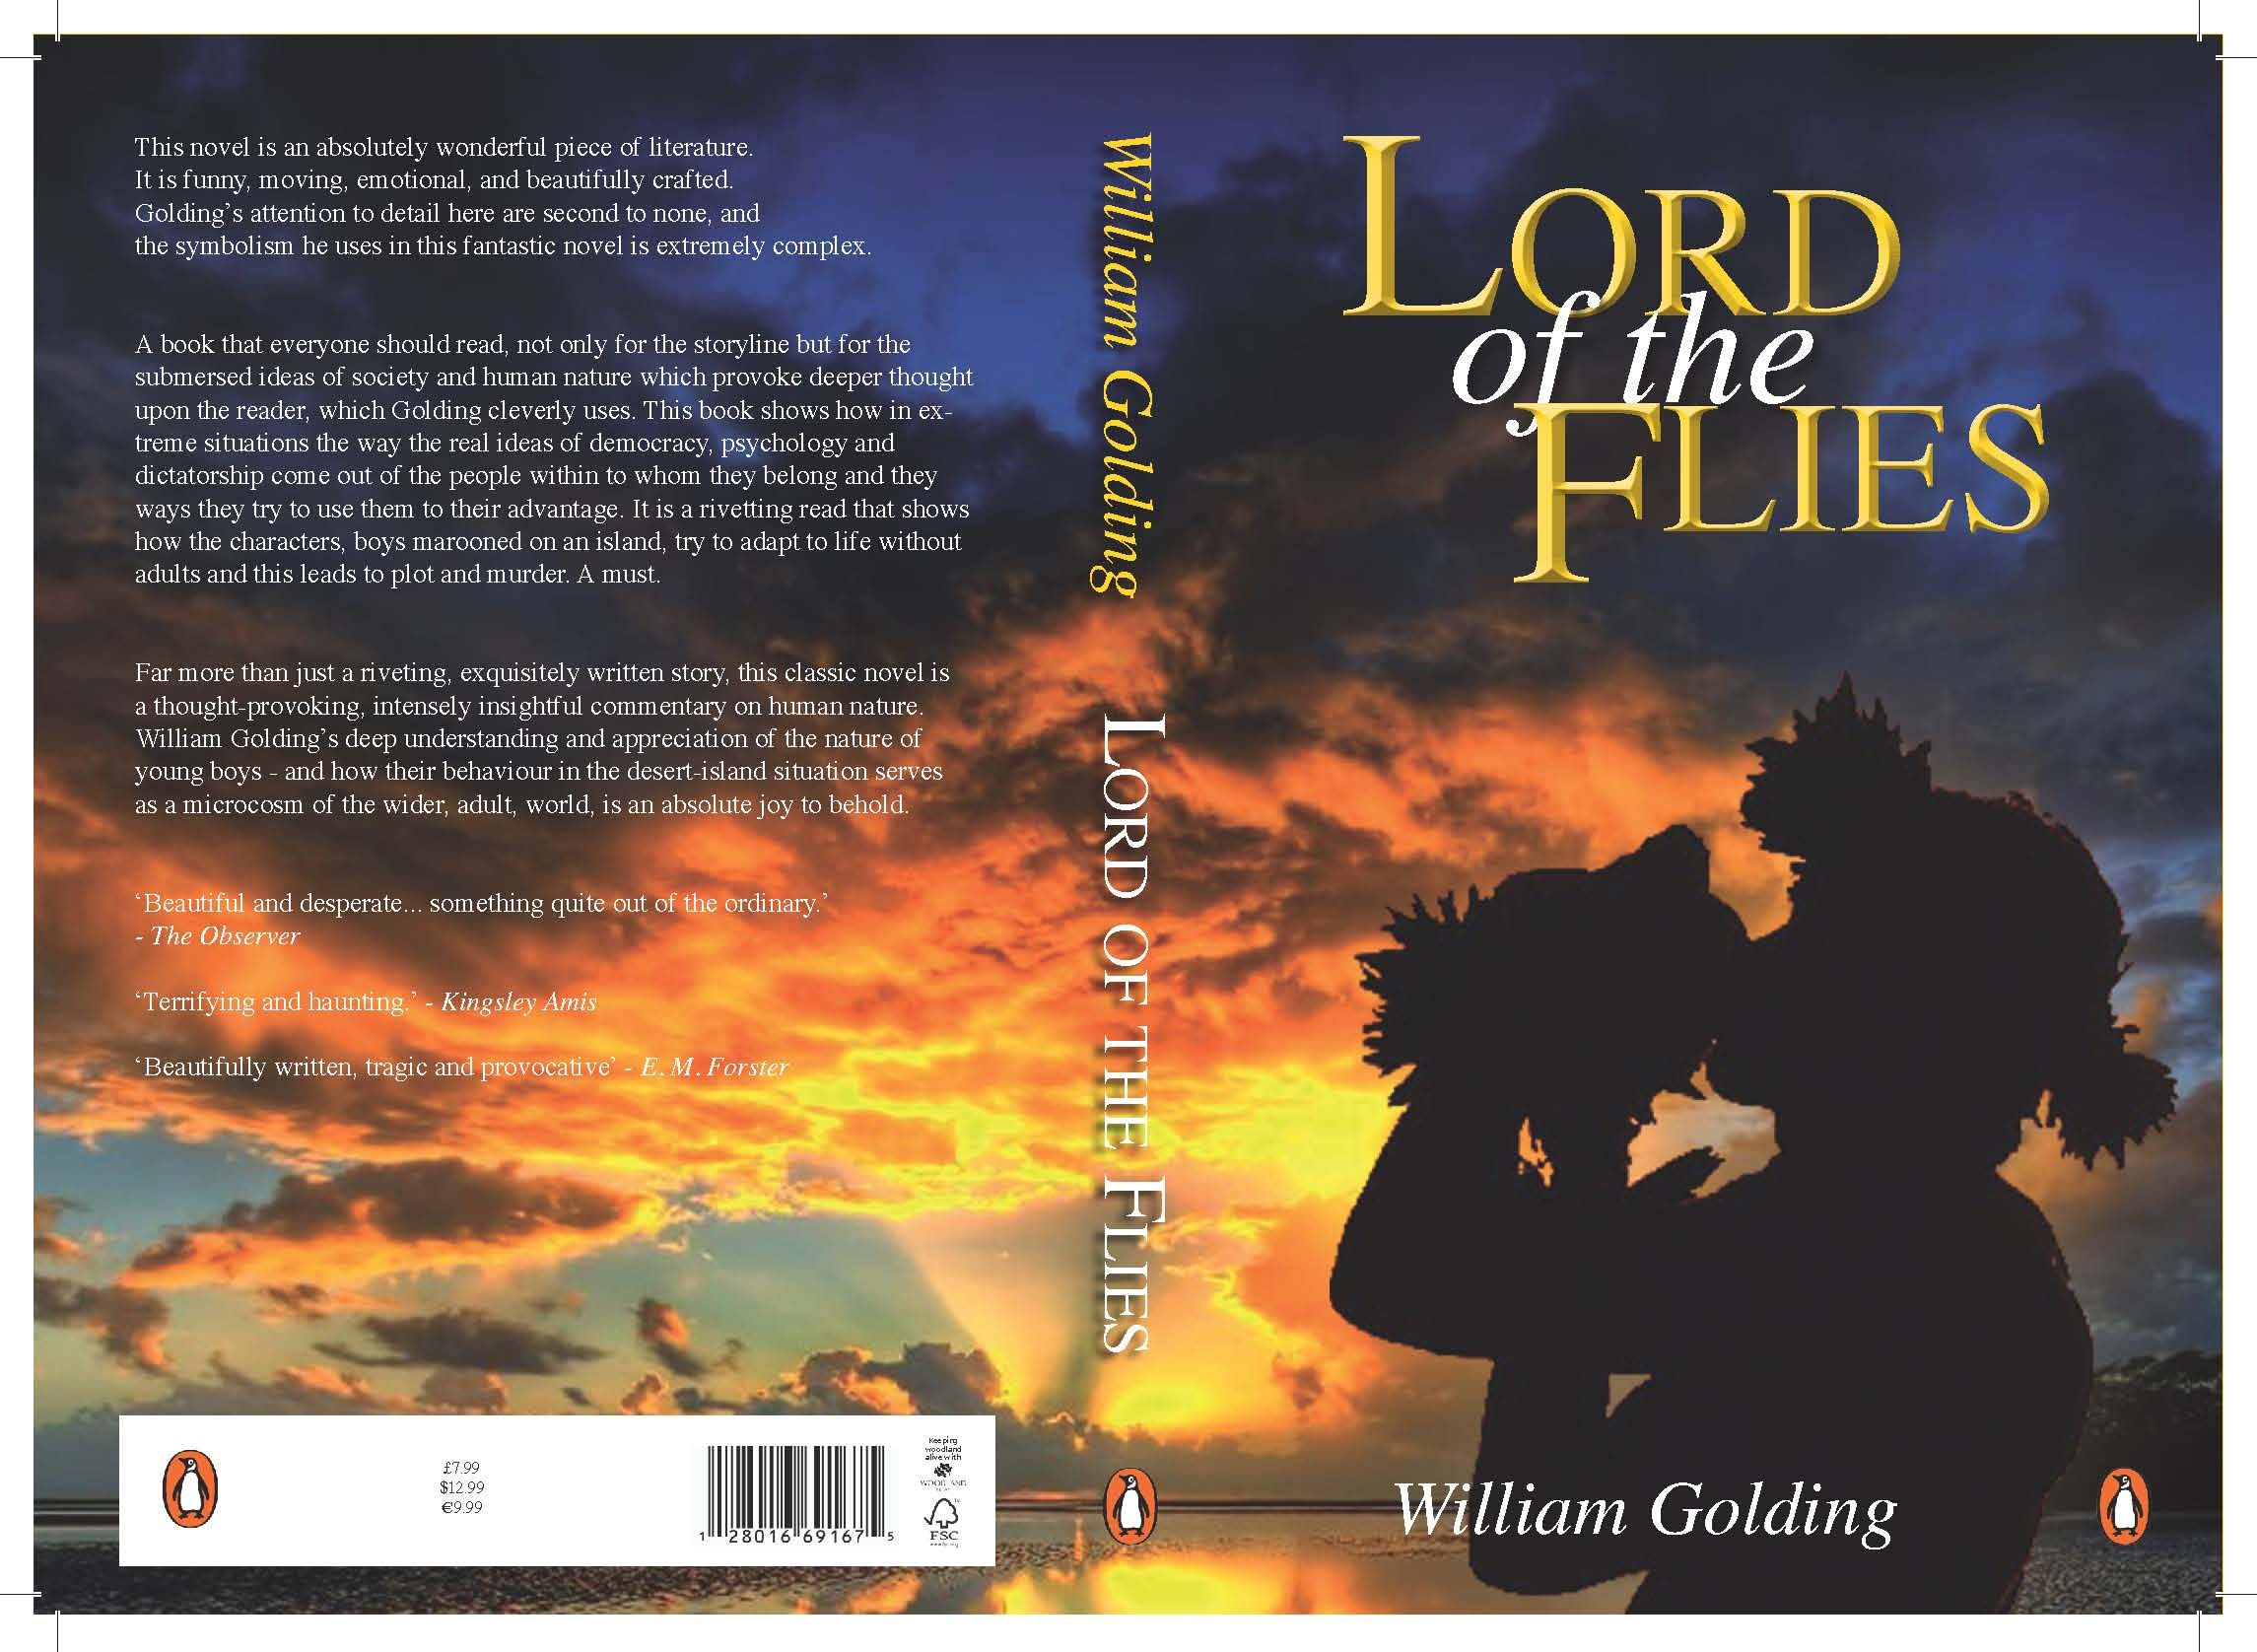 Lord of the flies book cover back lord of the fl book cover lord of the flies book cover back lord of the fl buycottarizona